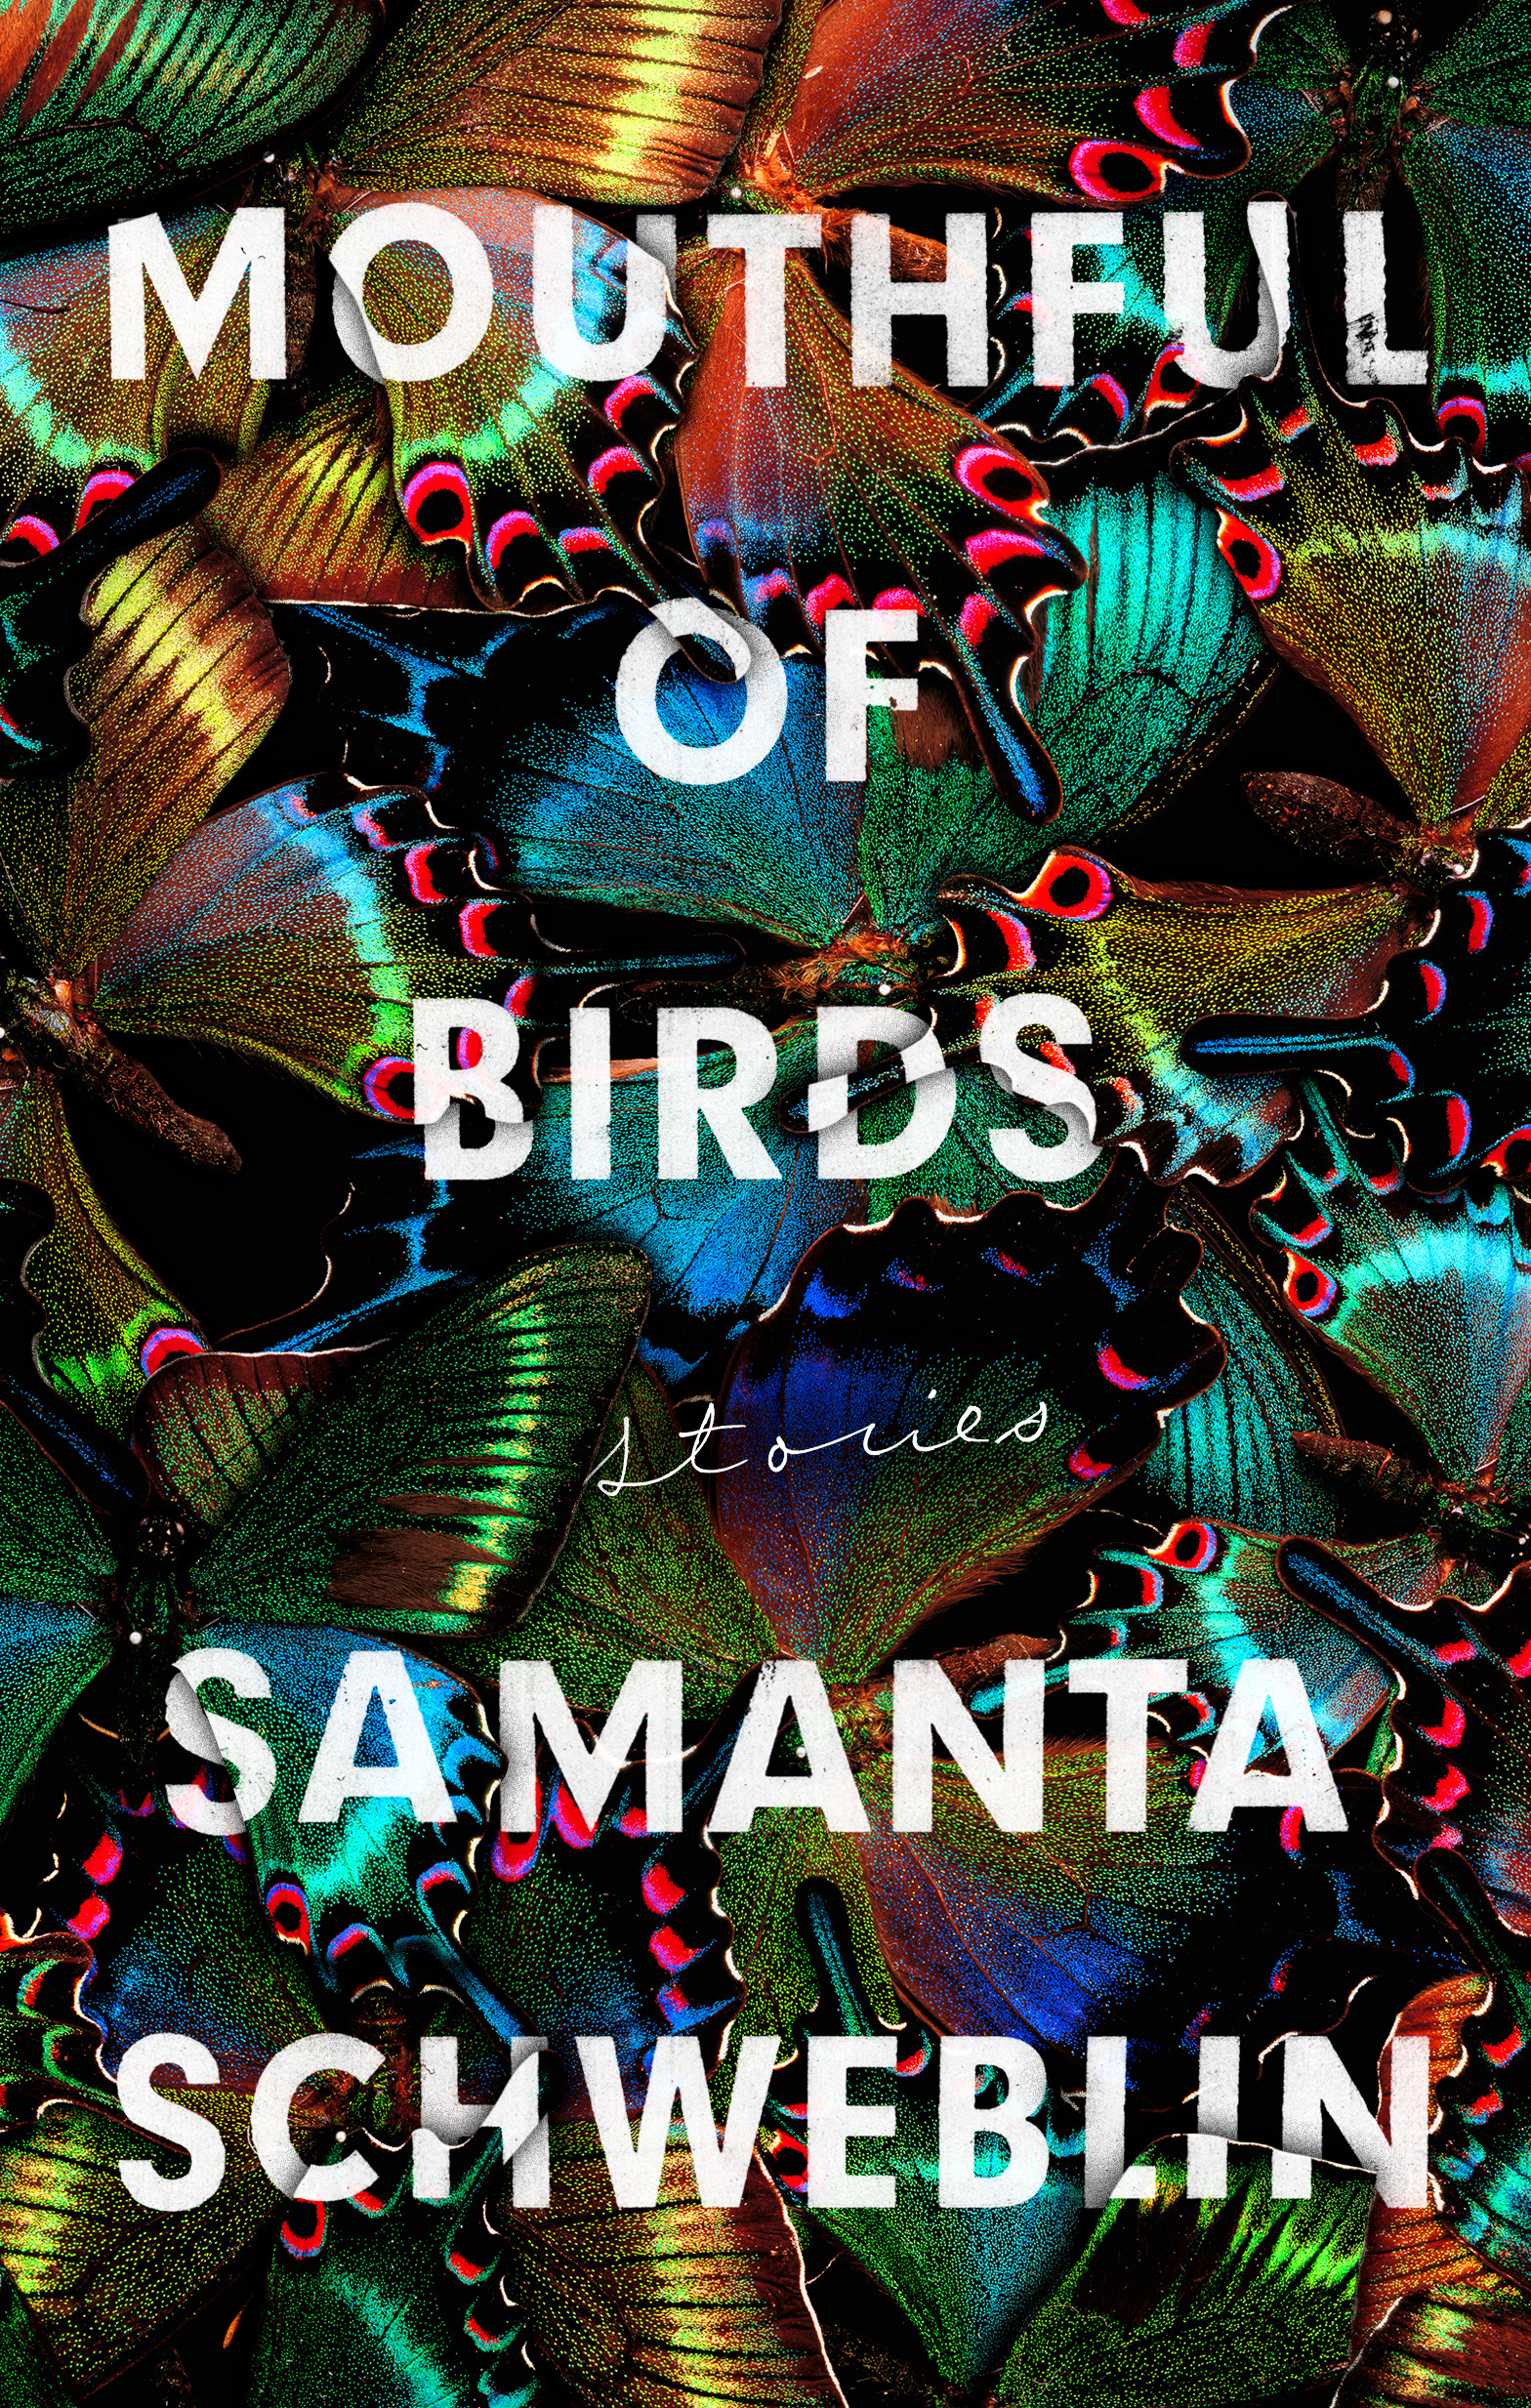 """Mouthful of Birds""{ } by Samantha Schweblin (Image: Courtesy Riverhead Books)"